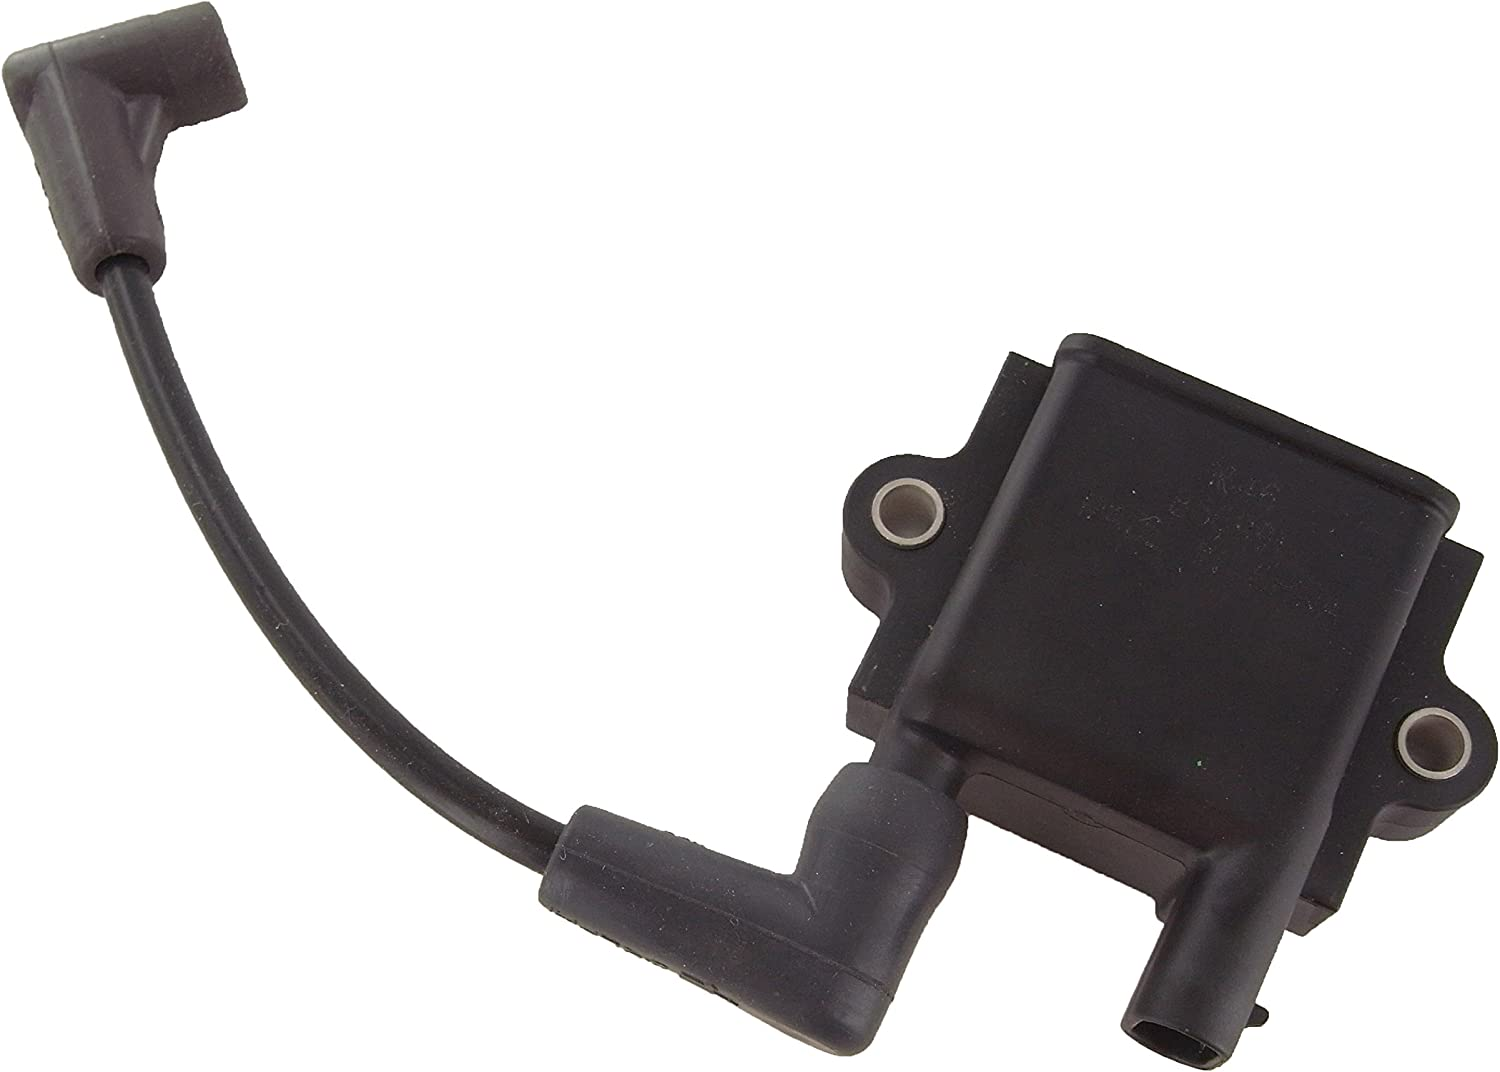 New IGNITION COIL fits Mercury Long 250HP 0T861319 /& Up Outboard Engine EFI 5pin